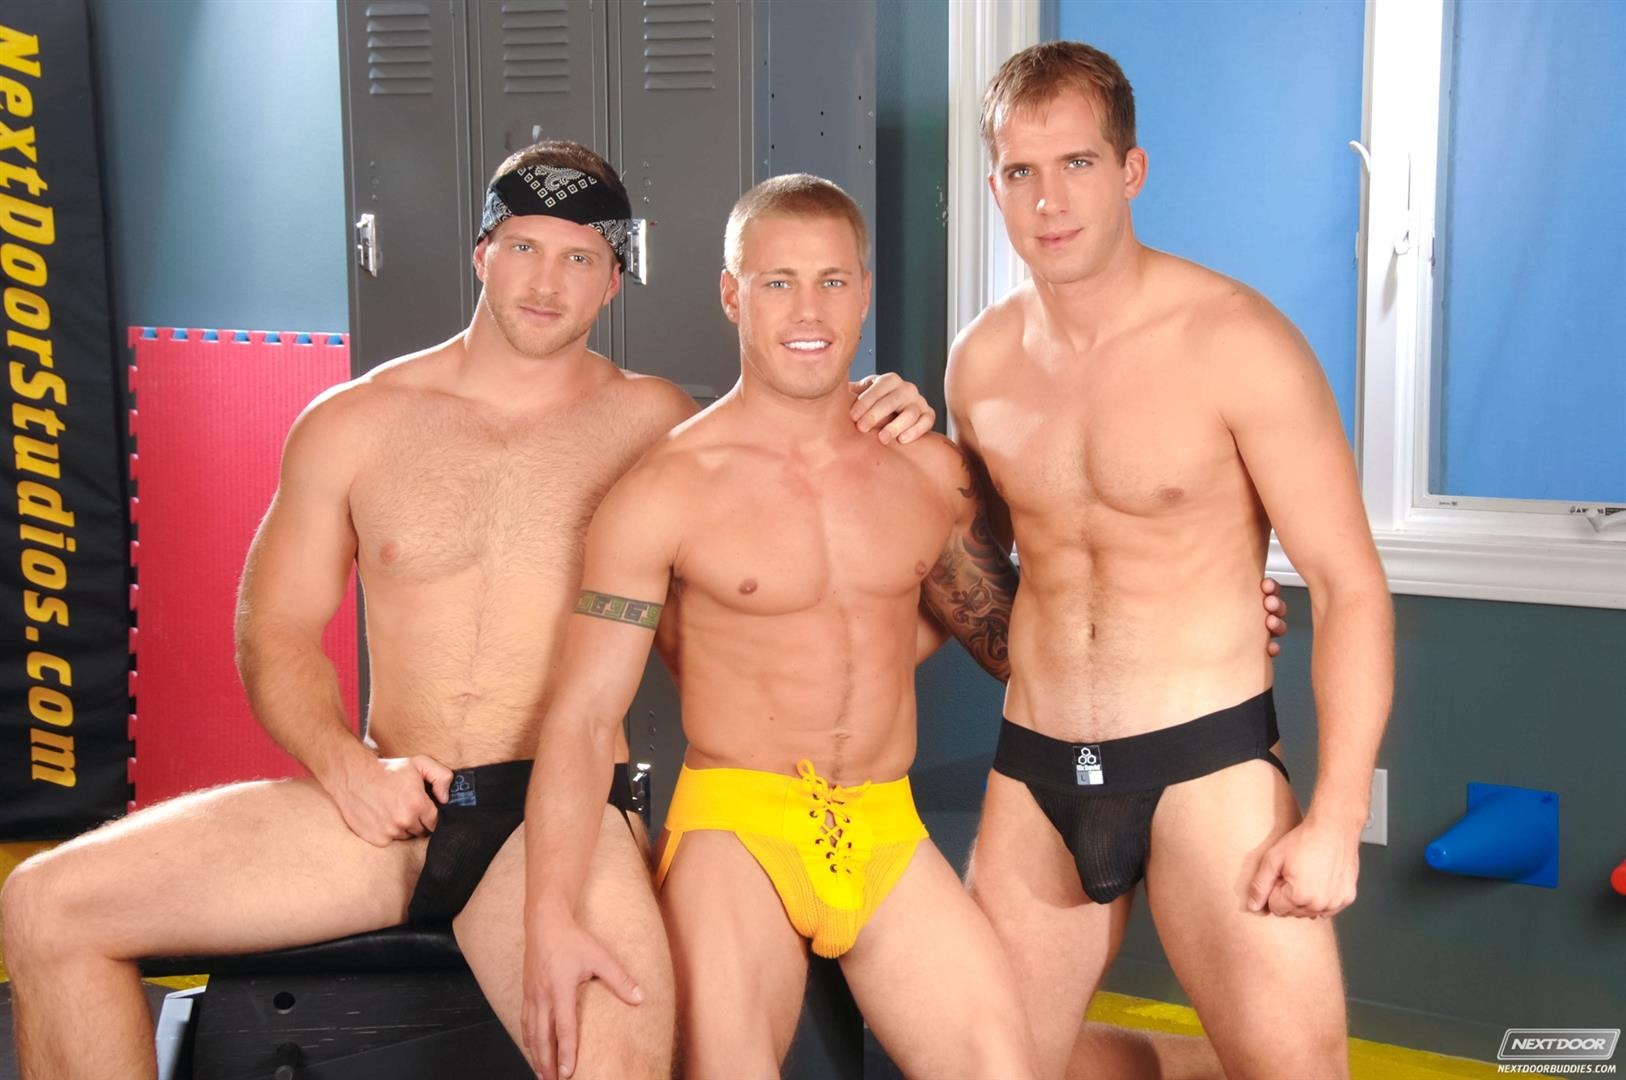 Next-Door-Buddies-Brandon-Lewis-Paul-Wagner-Brody-Wilder-Hung-Jocks-Fucking-In-The-Locker-Room-Amateur-Gay-Porn-07 Muscle Jocks Tag Teaming A Hot Muscle Ass In The Gym Locker Room